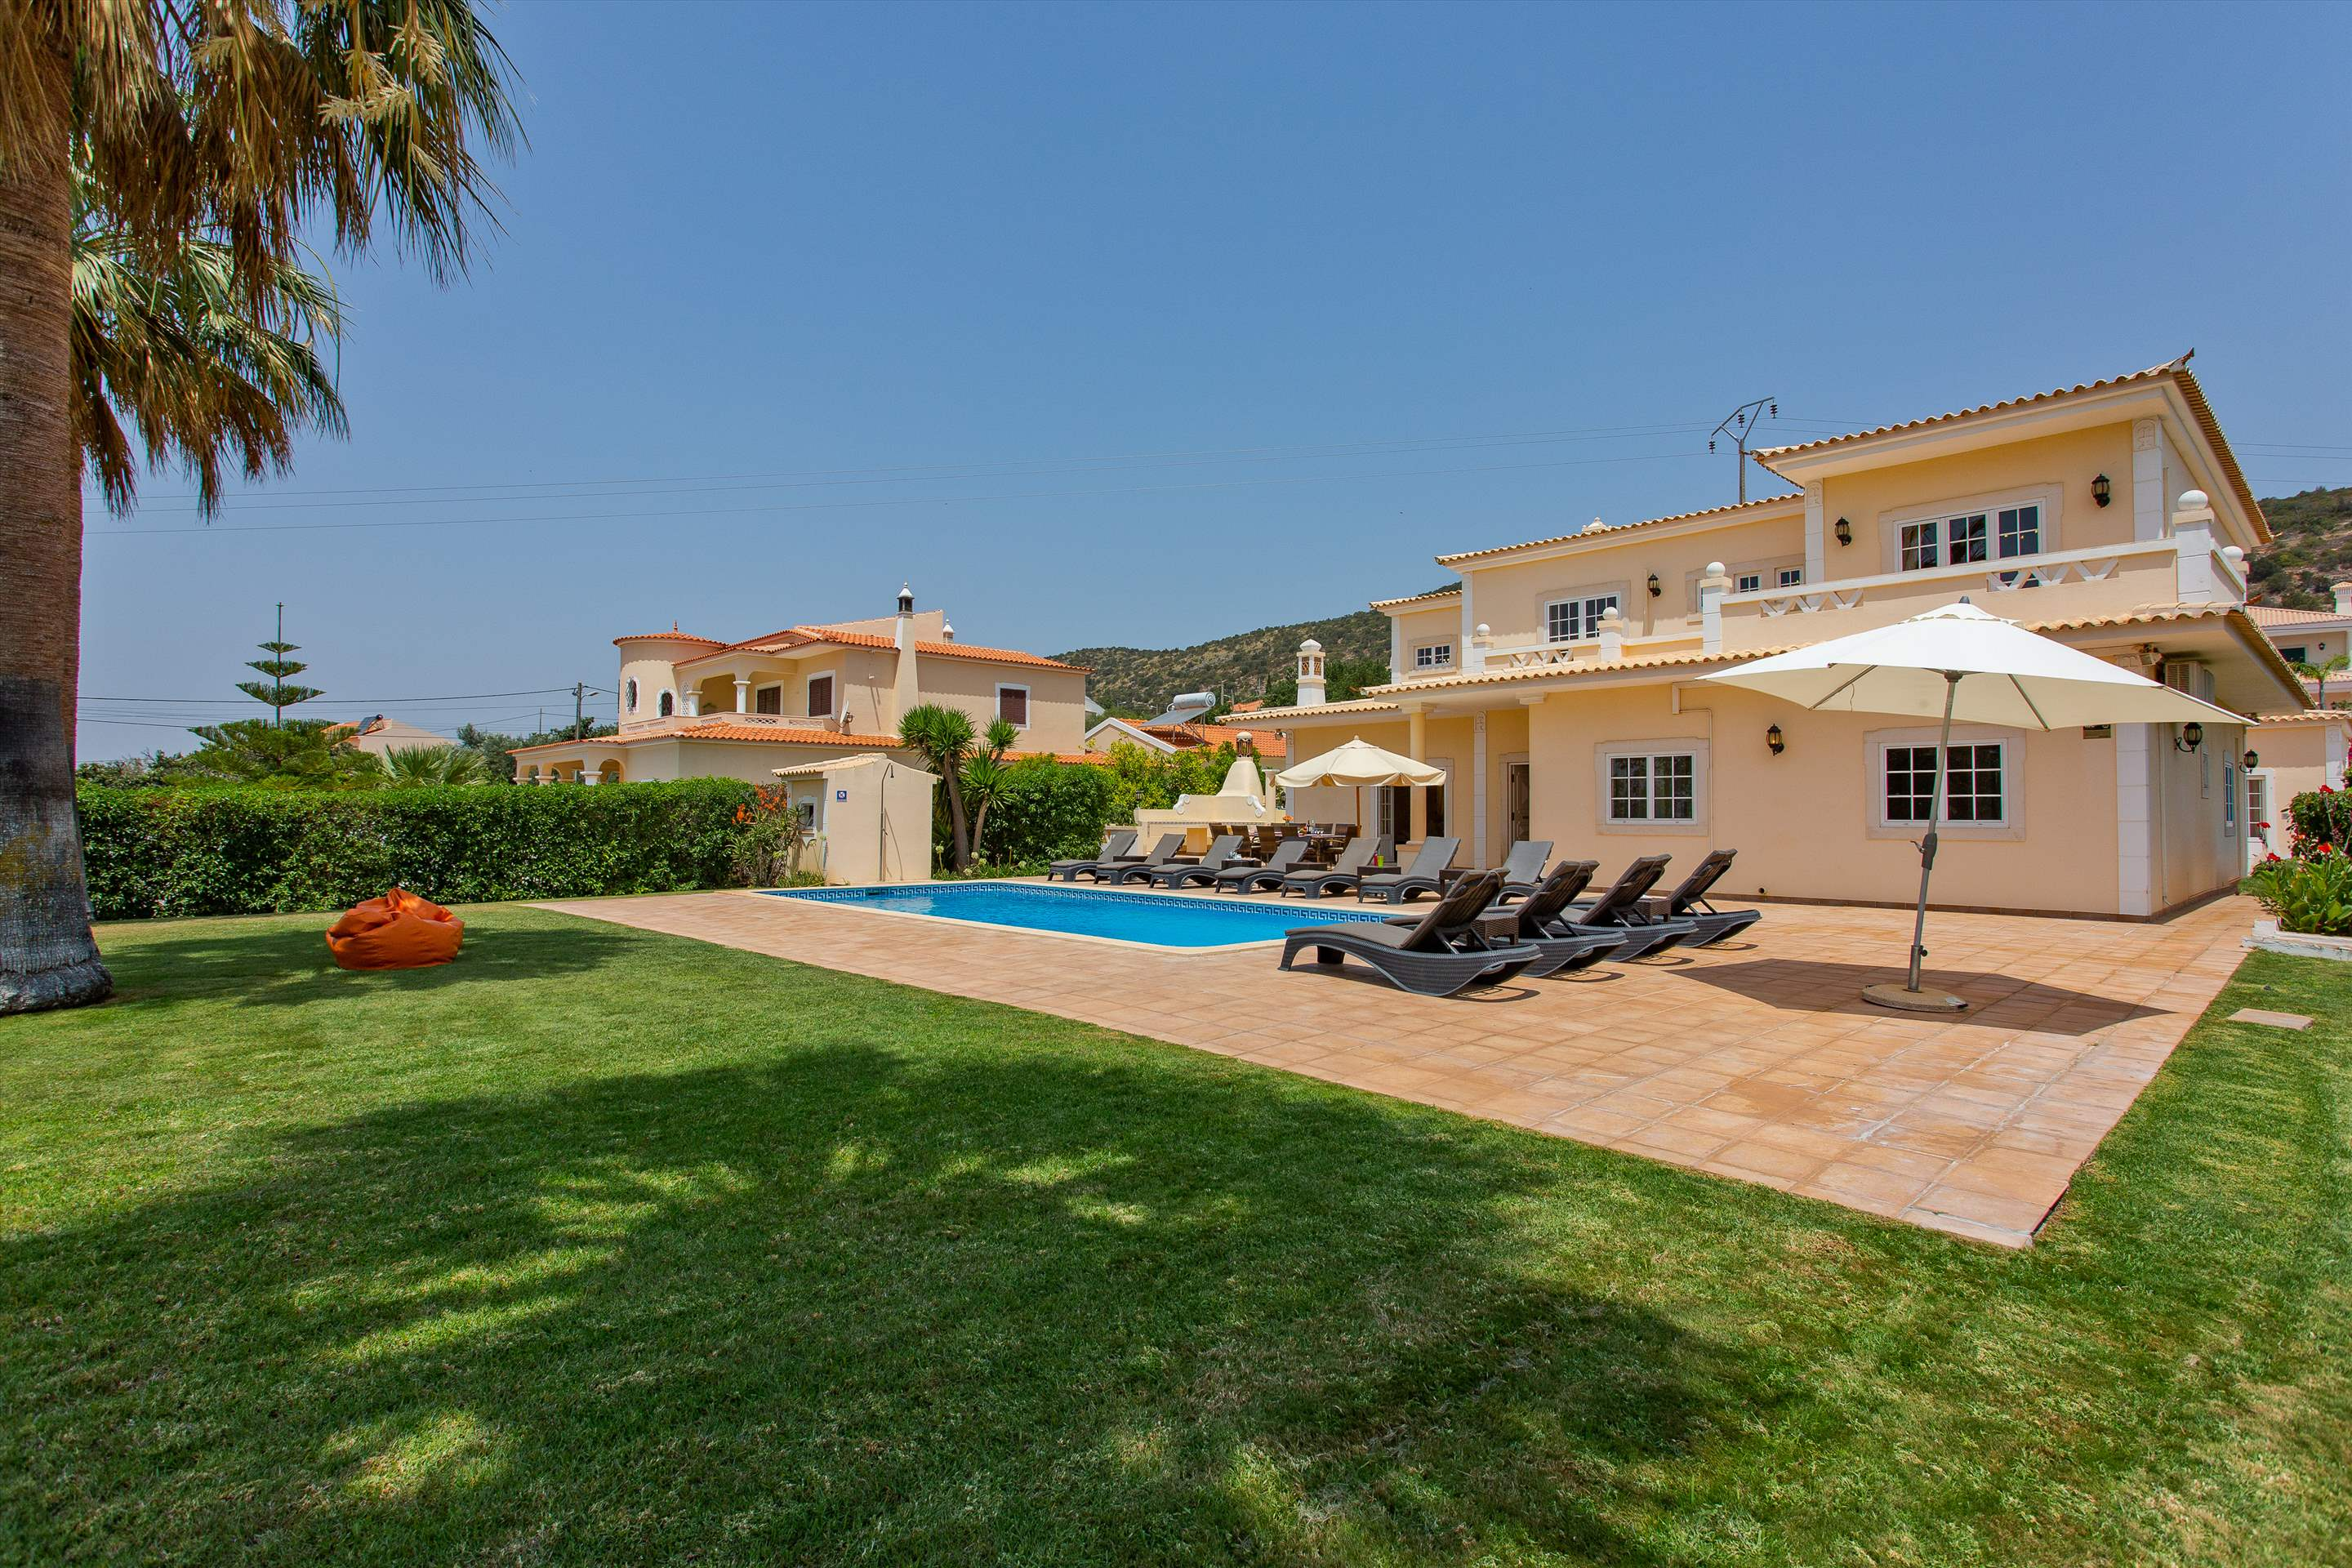 Quinta do Bruno, Four Bedroom Rate, 4 bedroom villa in Vilamoura Area, Algarve Photo #18